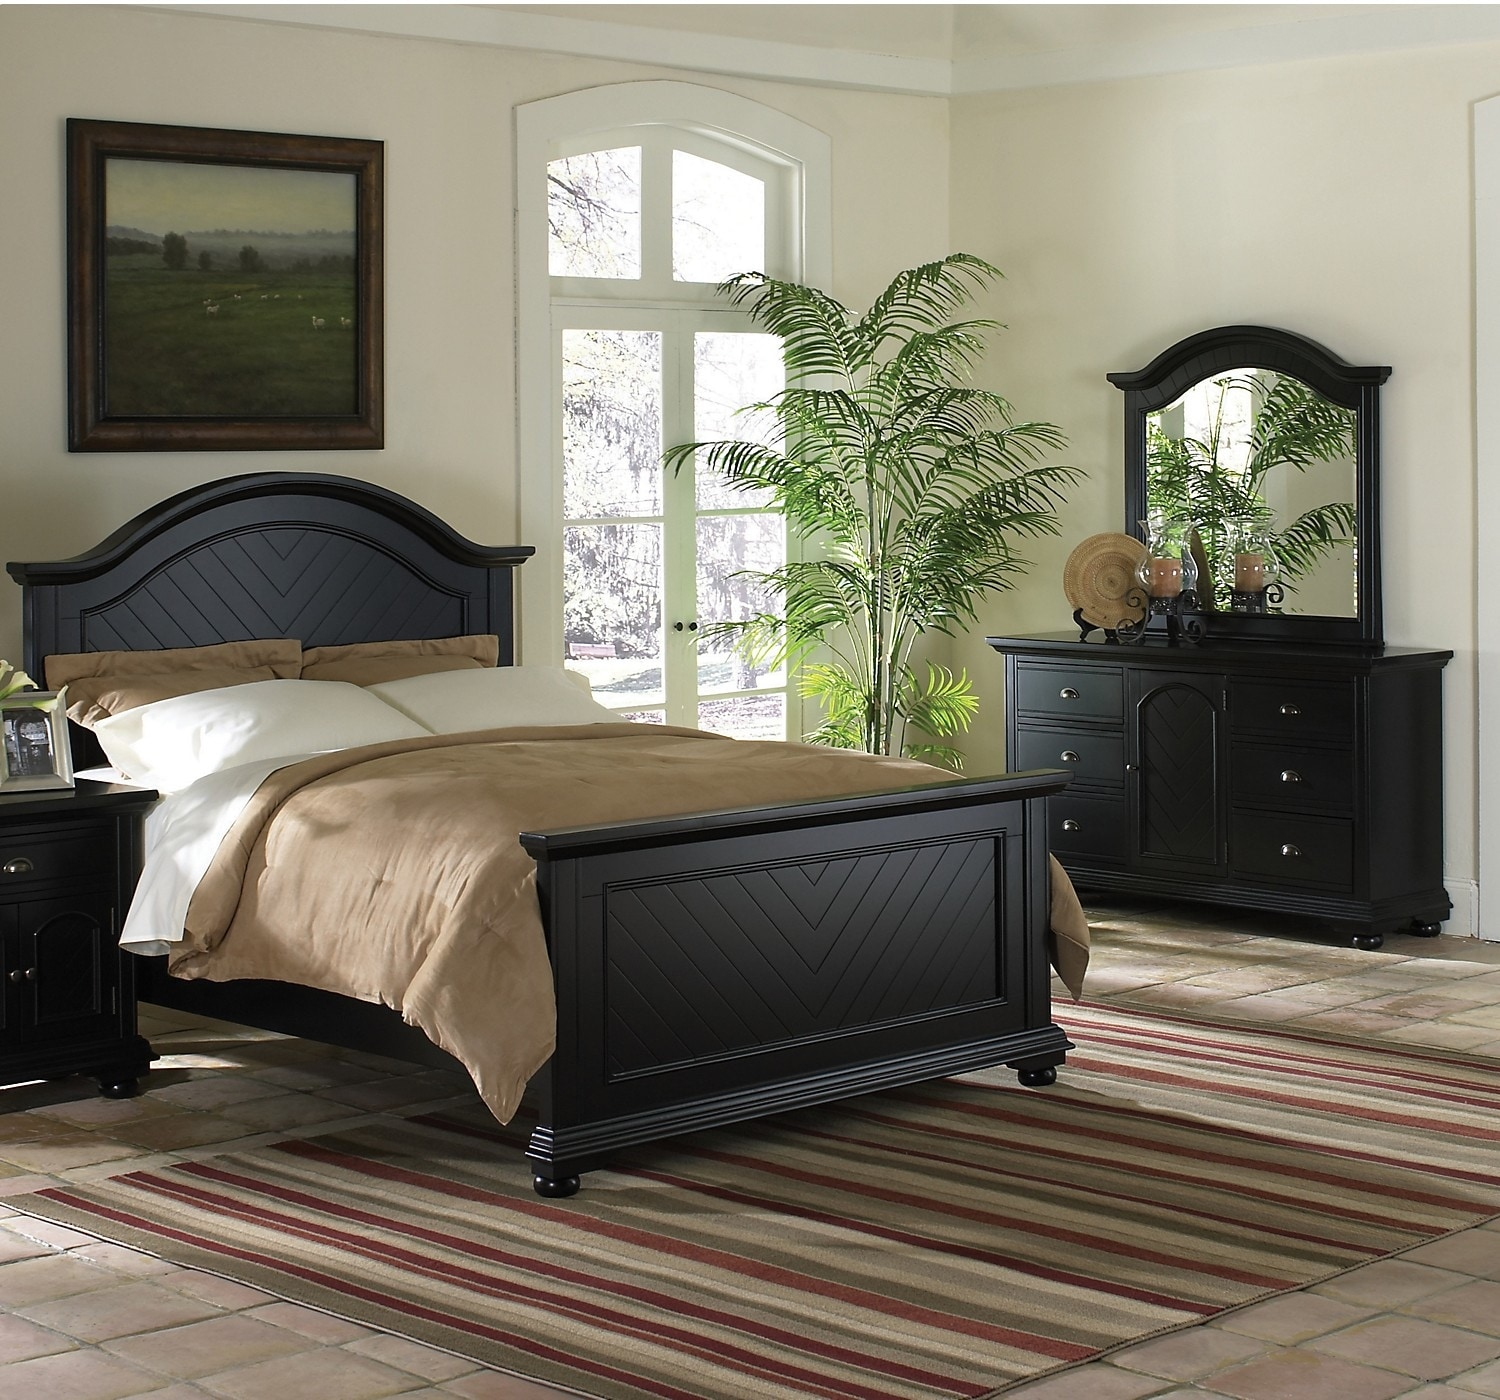 Brook Black 5 Piece Full Bedroom Set The Brick